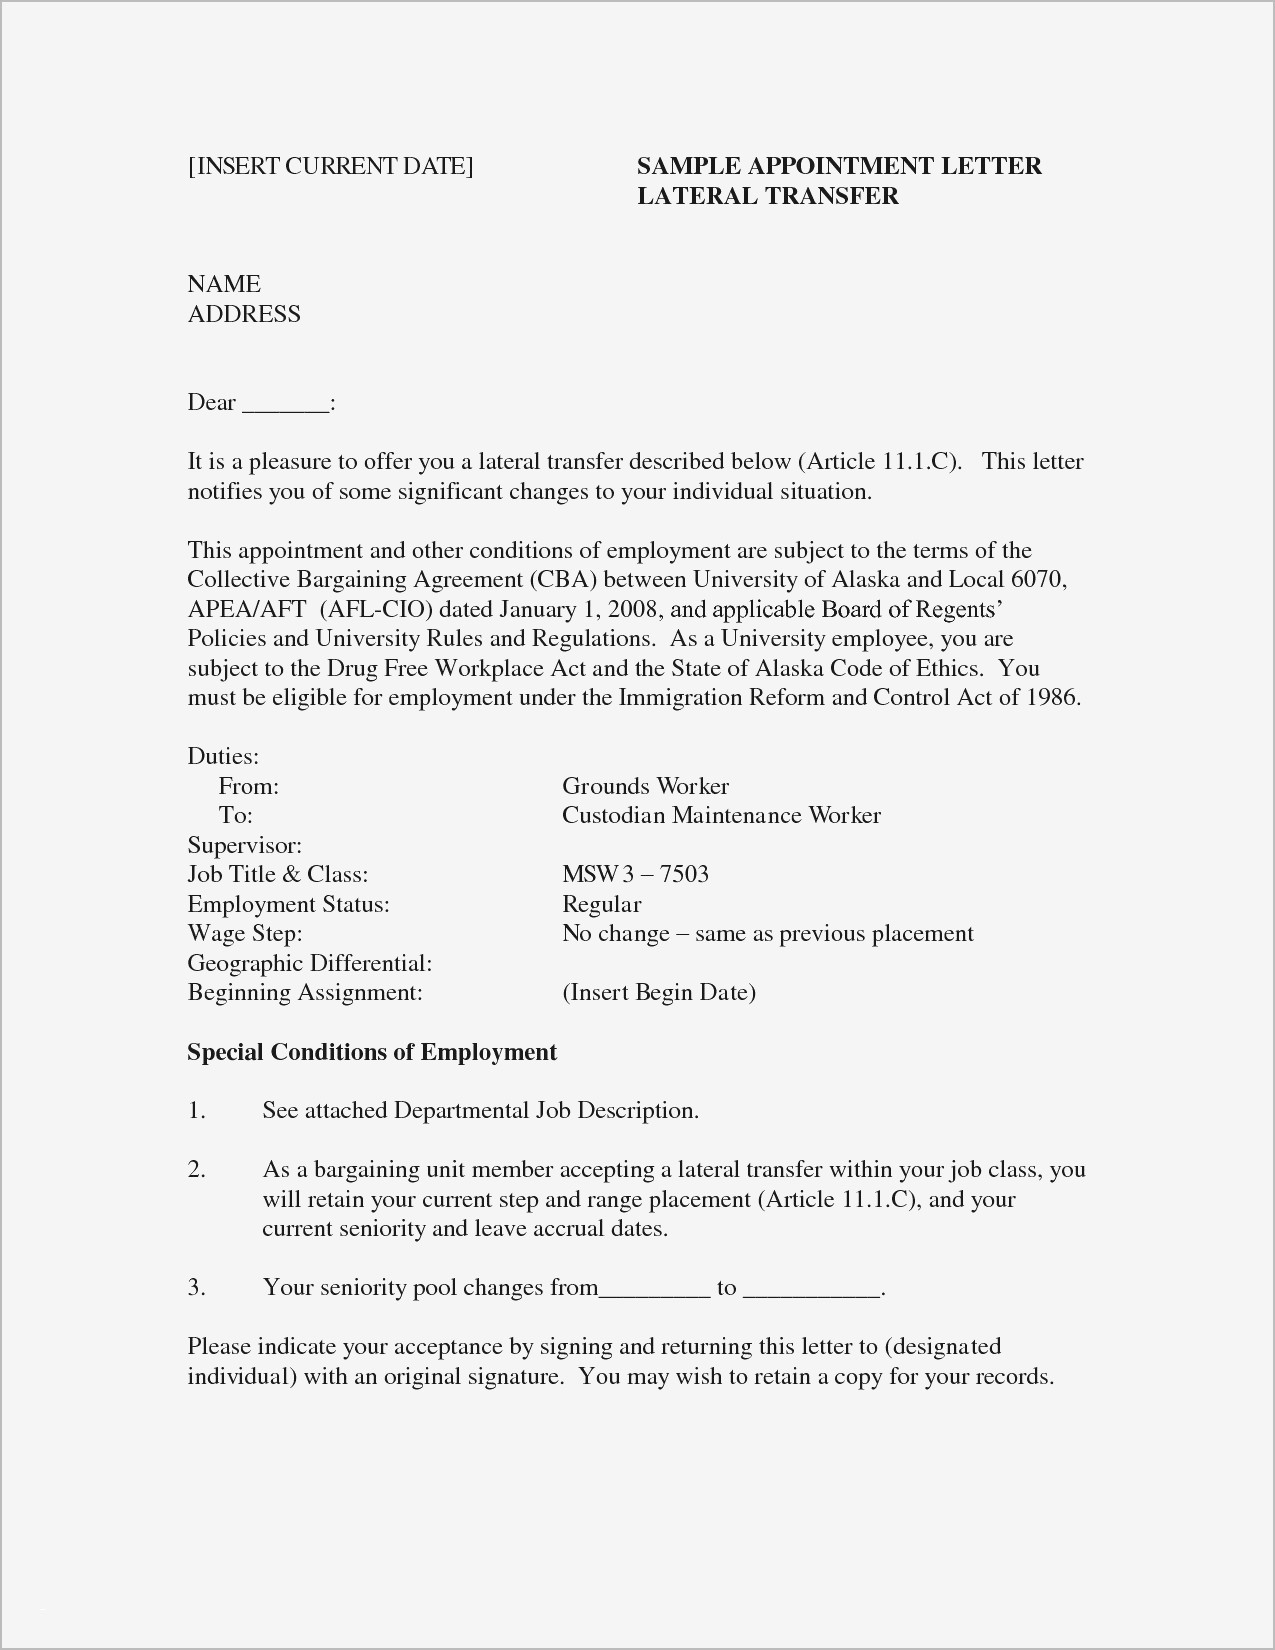 Personal Training Resume Template - Personal Trainer Resume New Beautiful Science Resume Template